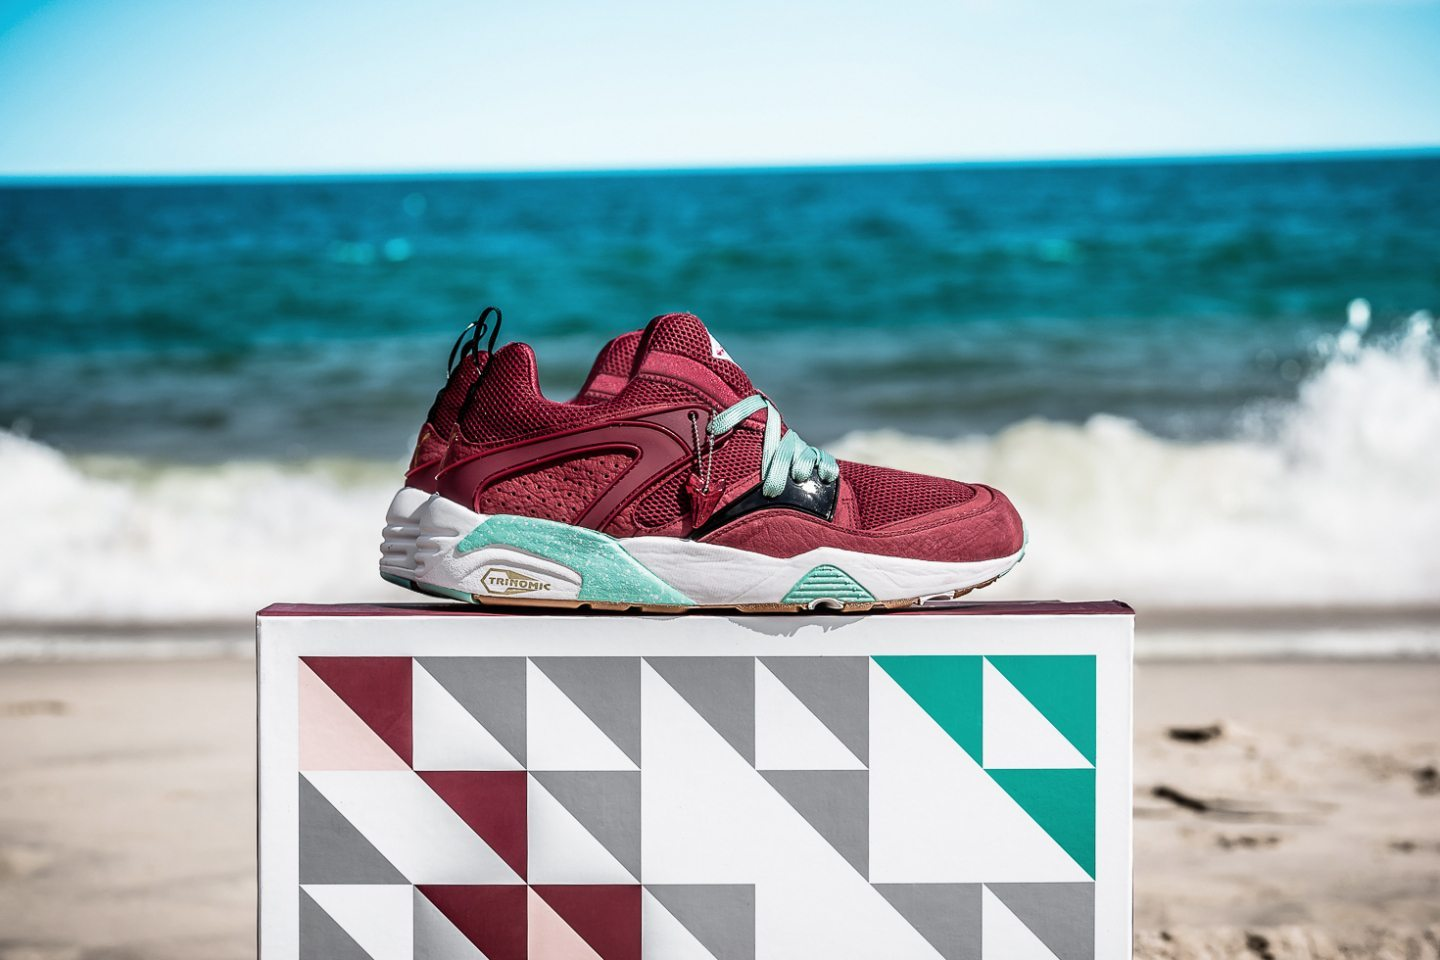 Sneaker Freaker x Packer x Puma Blaze of Glory Bloodbath 2